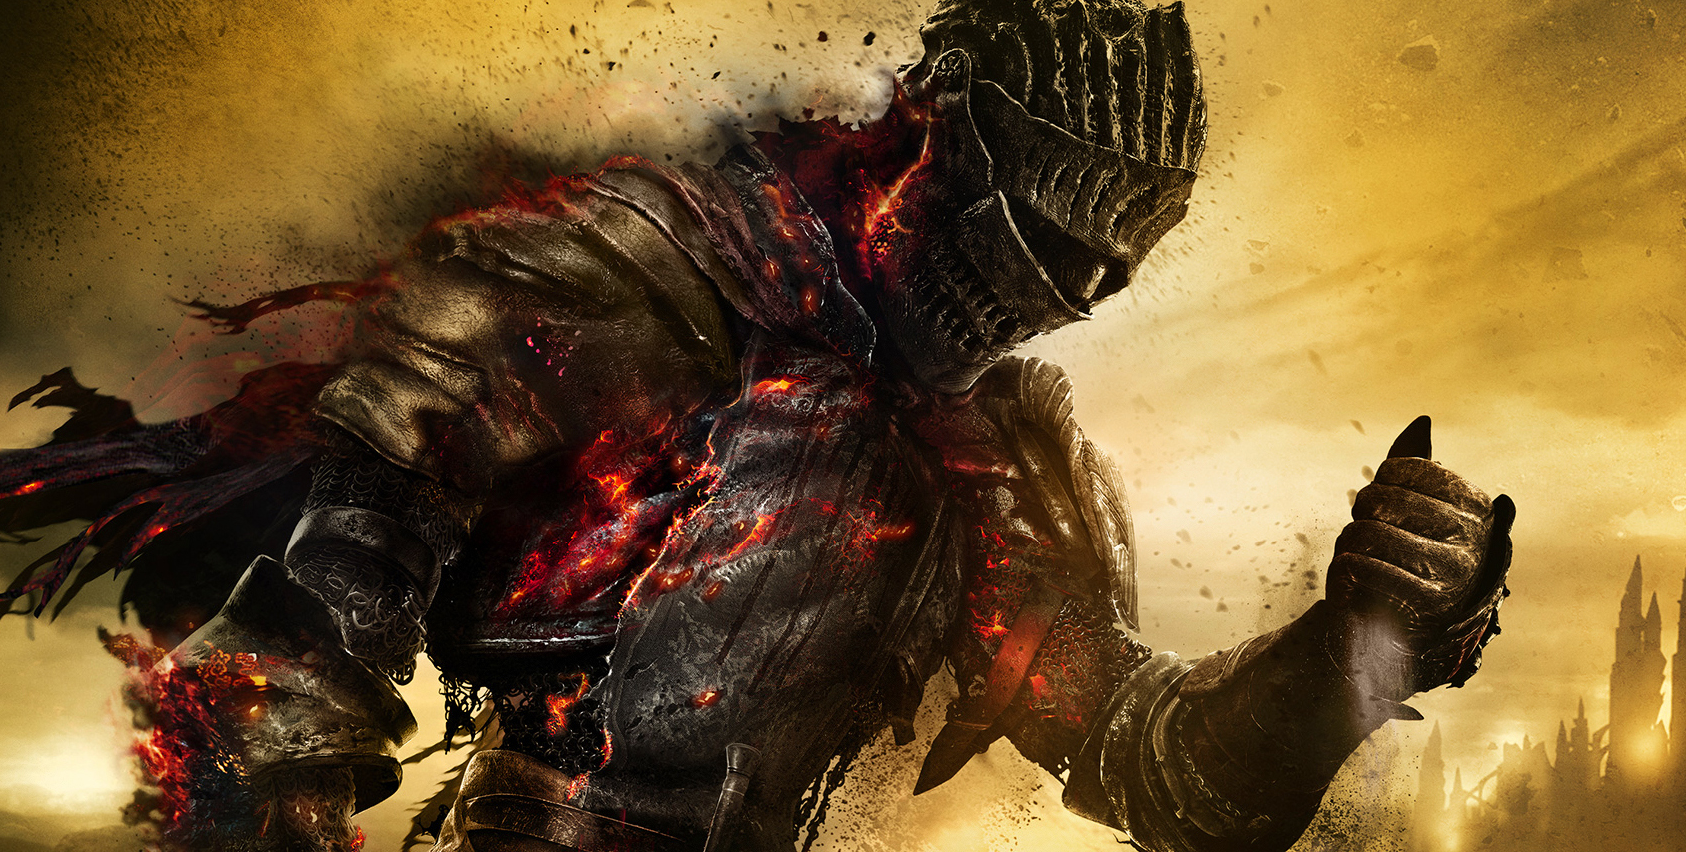 Right Now, From Software Doesn't Want To Make Dark Souls Sequels